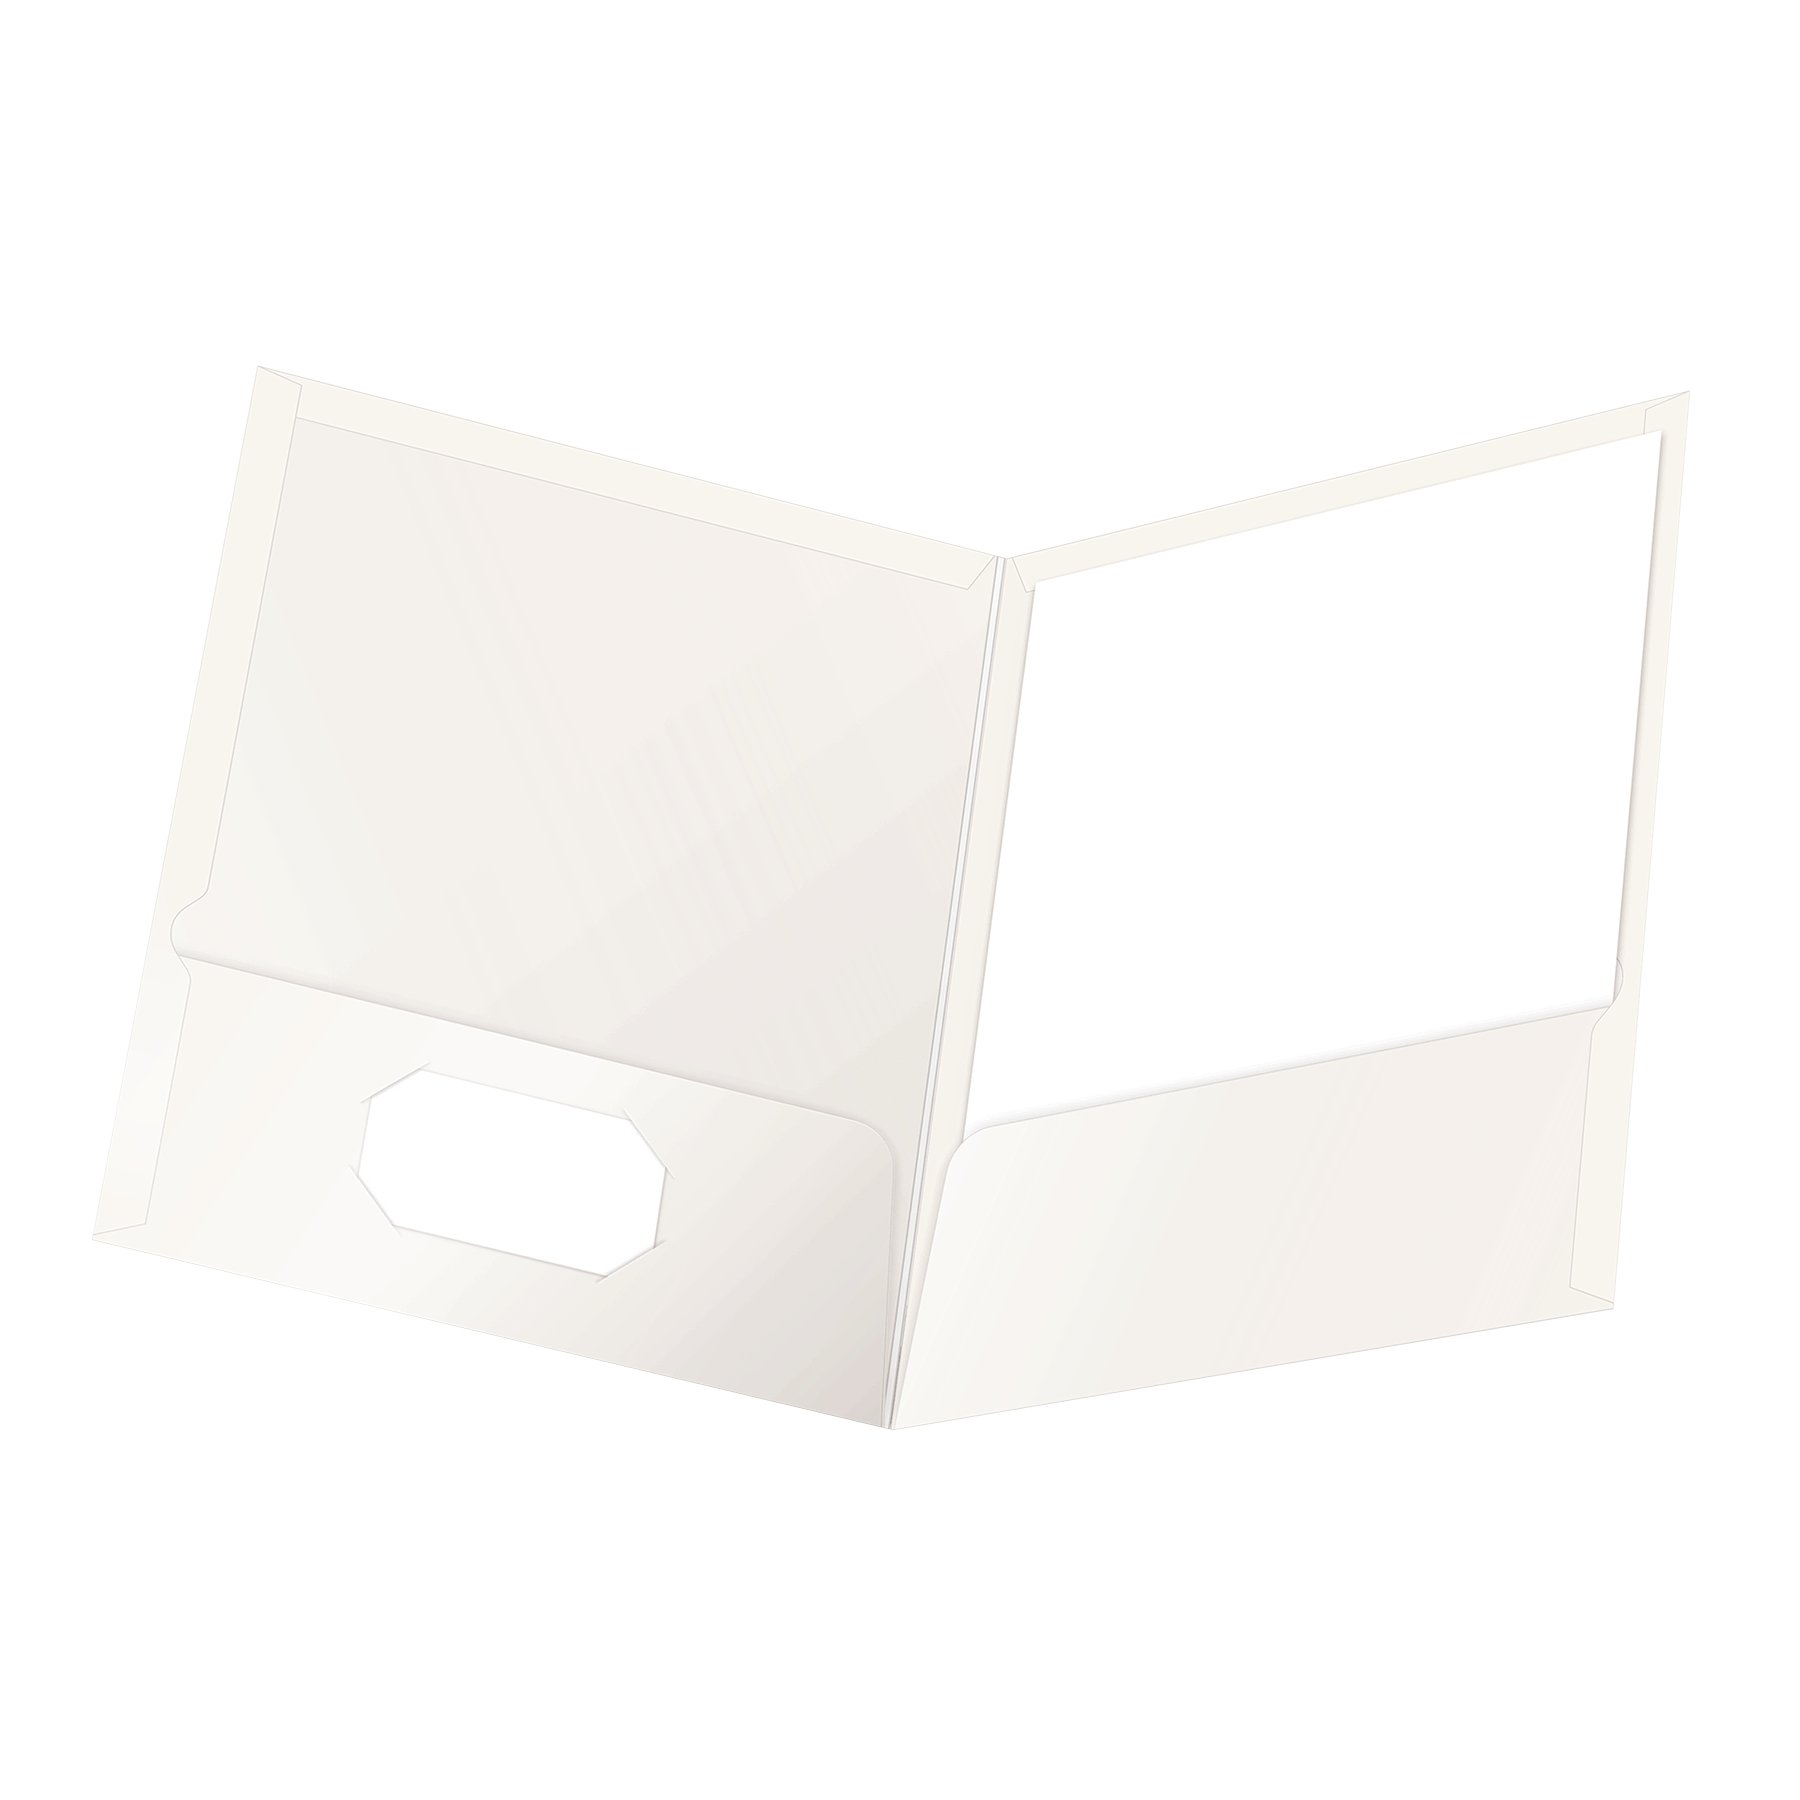 Oxford Laminated Twin-Pocket Folders, Letter Size, White, Holds 100 Sheets, Box of 25 (51704EE) by Oxford